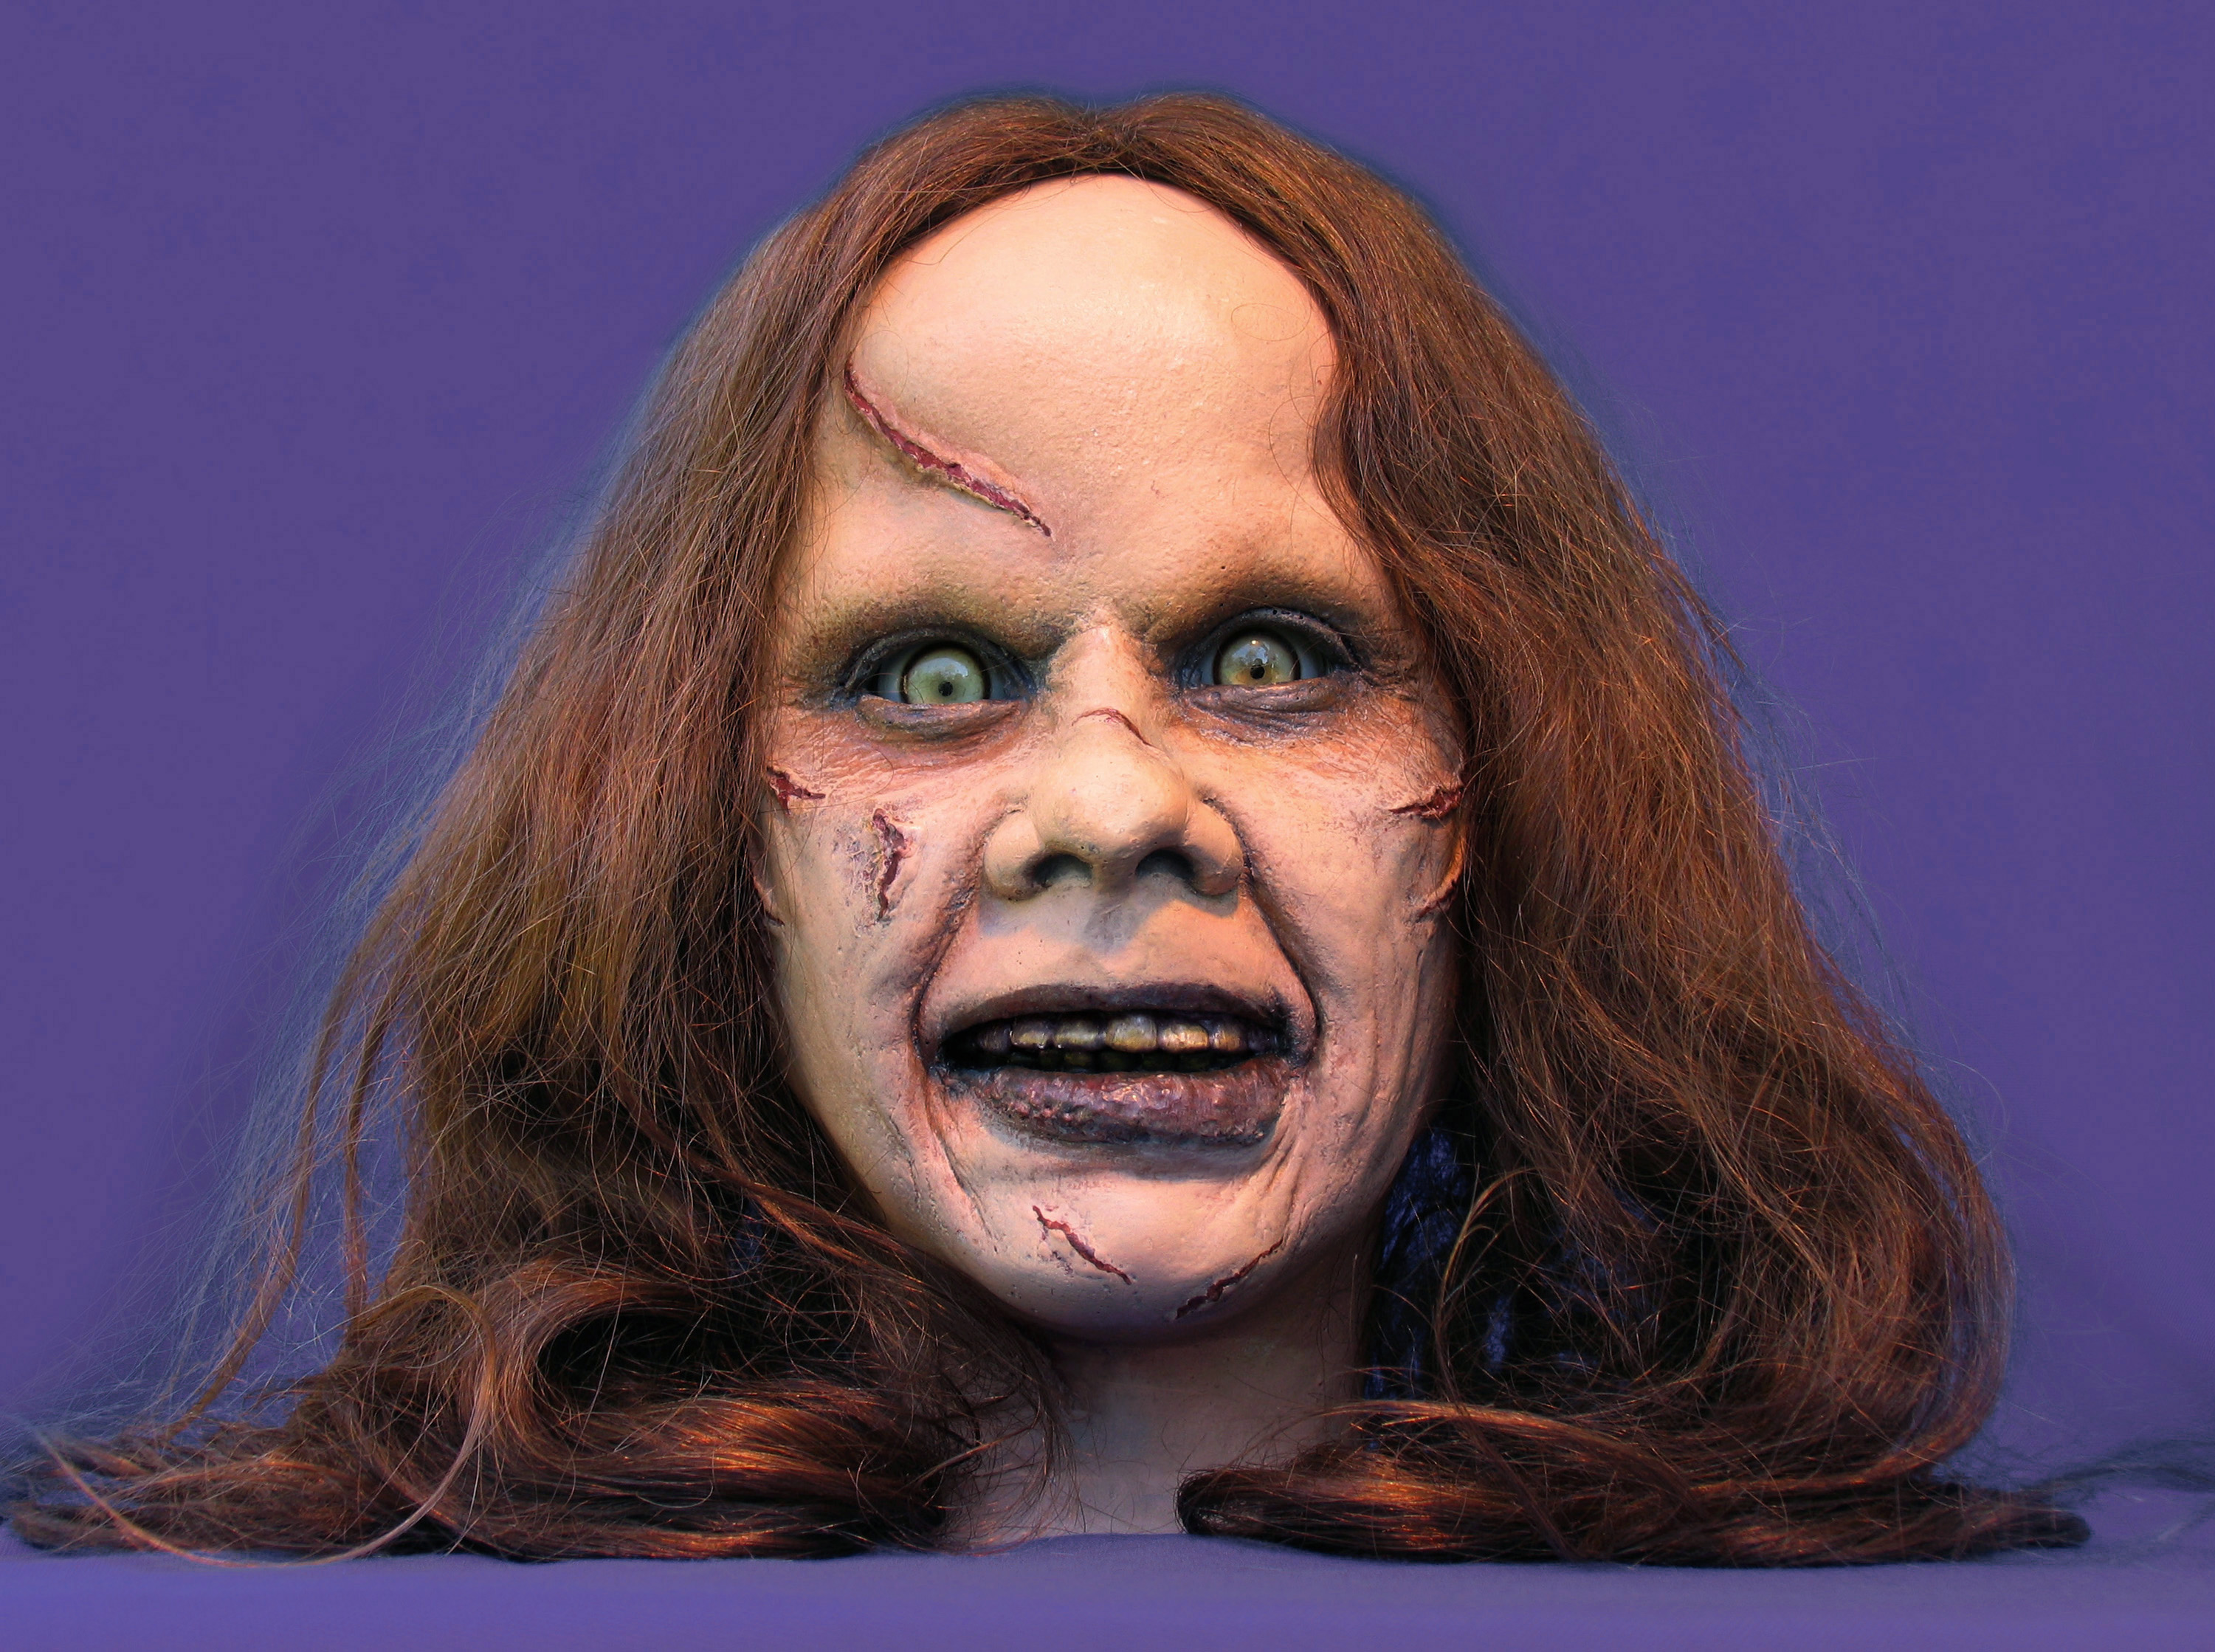 dungeon_original_exorcist_head_linda_blair.jpg